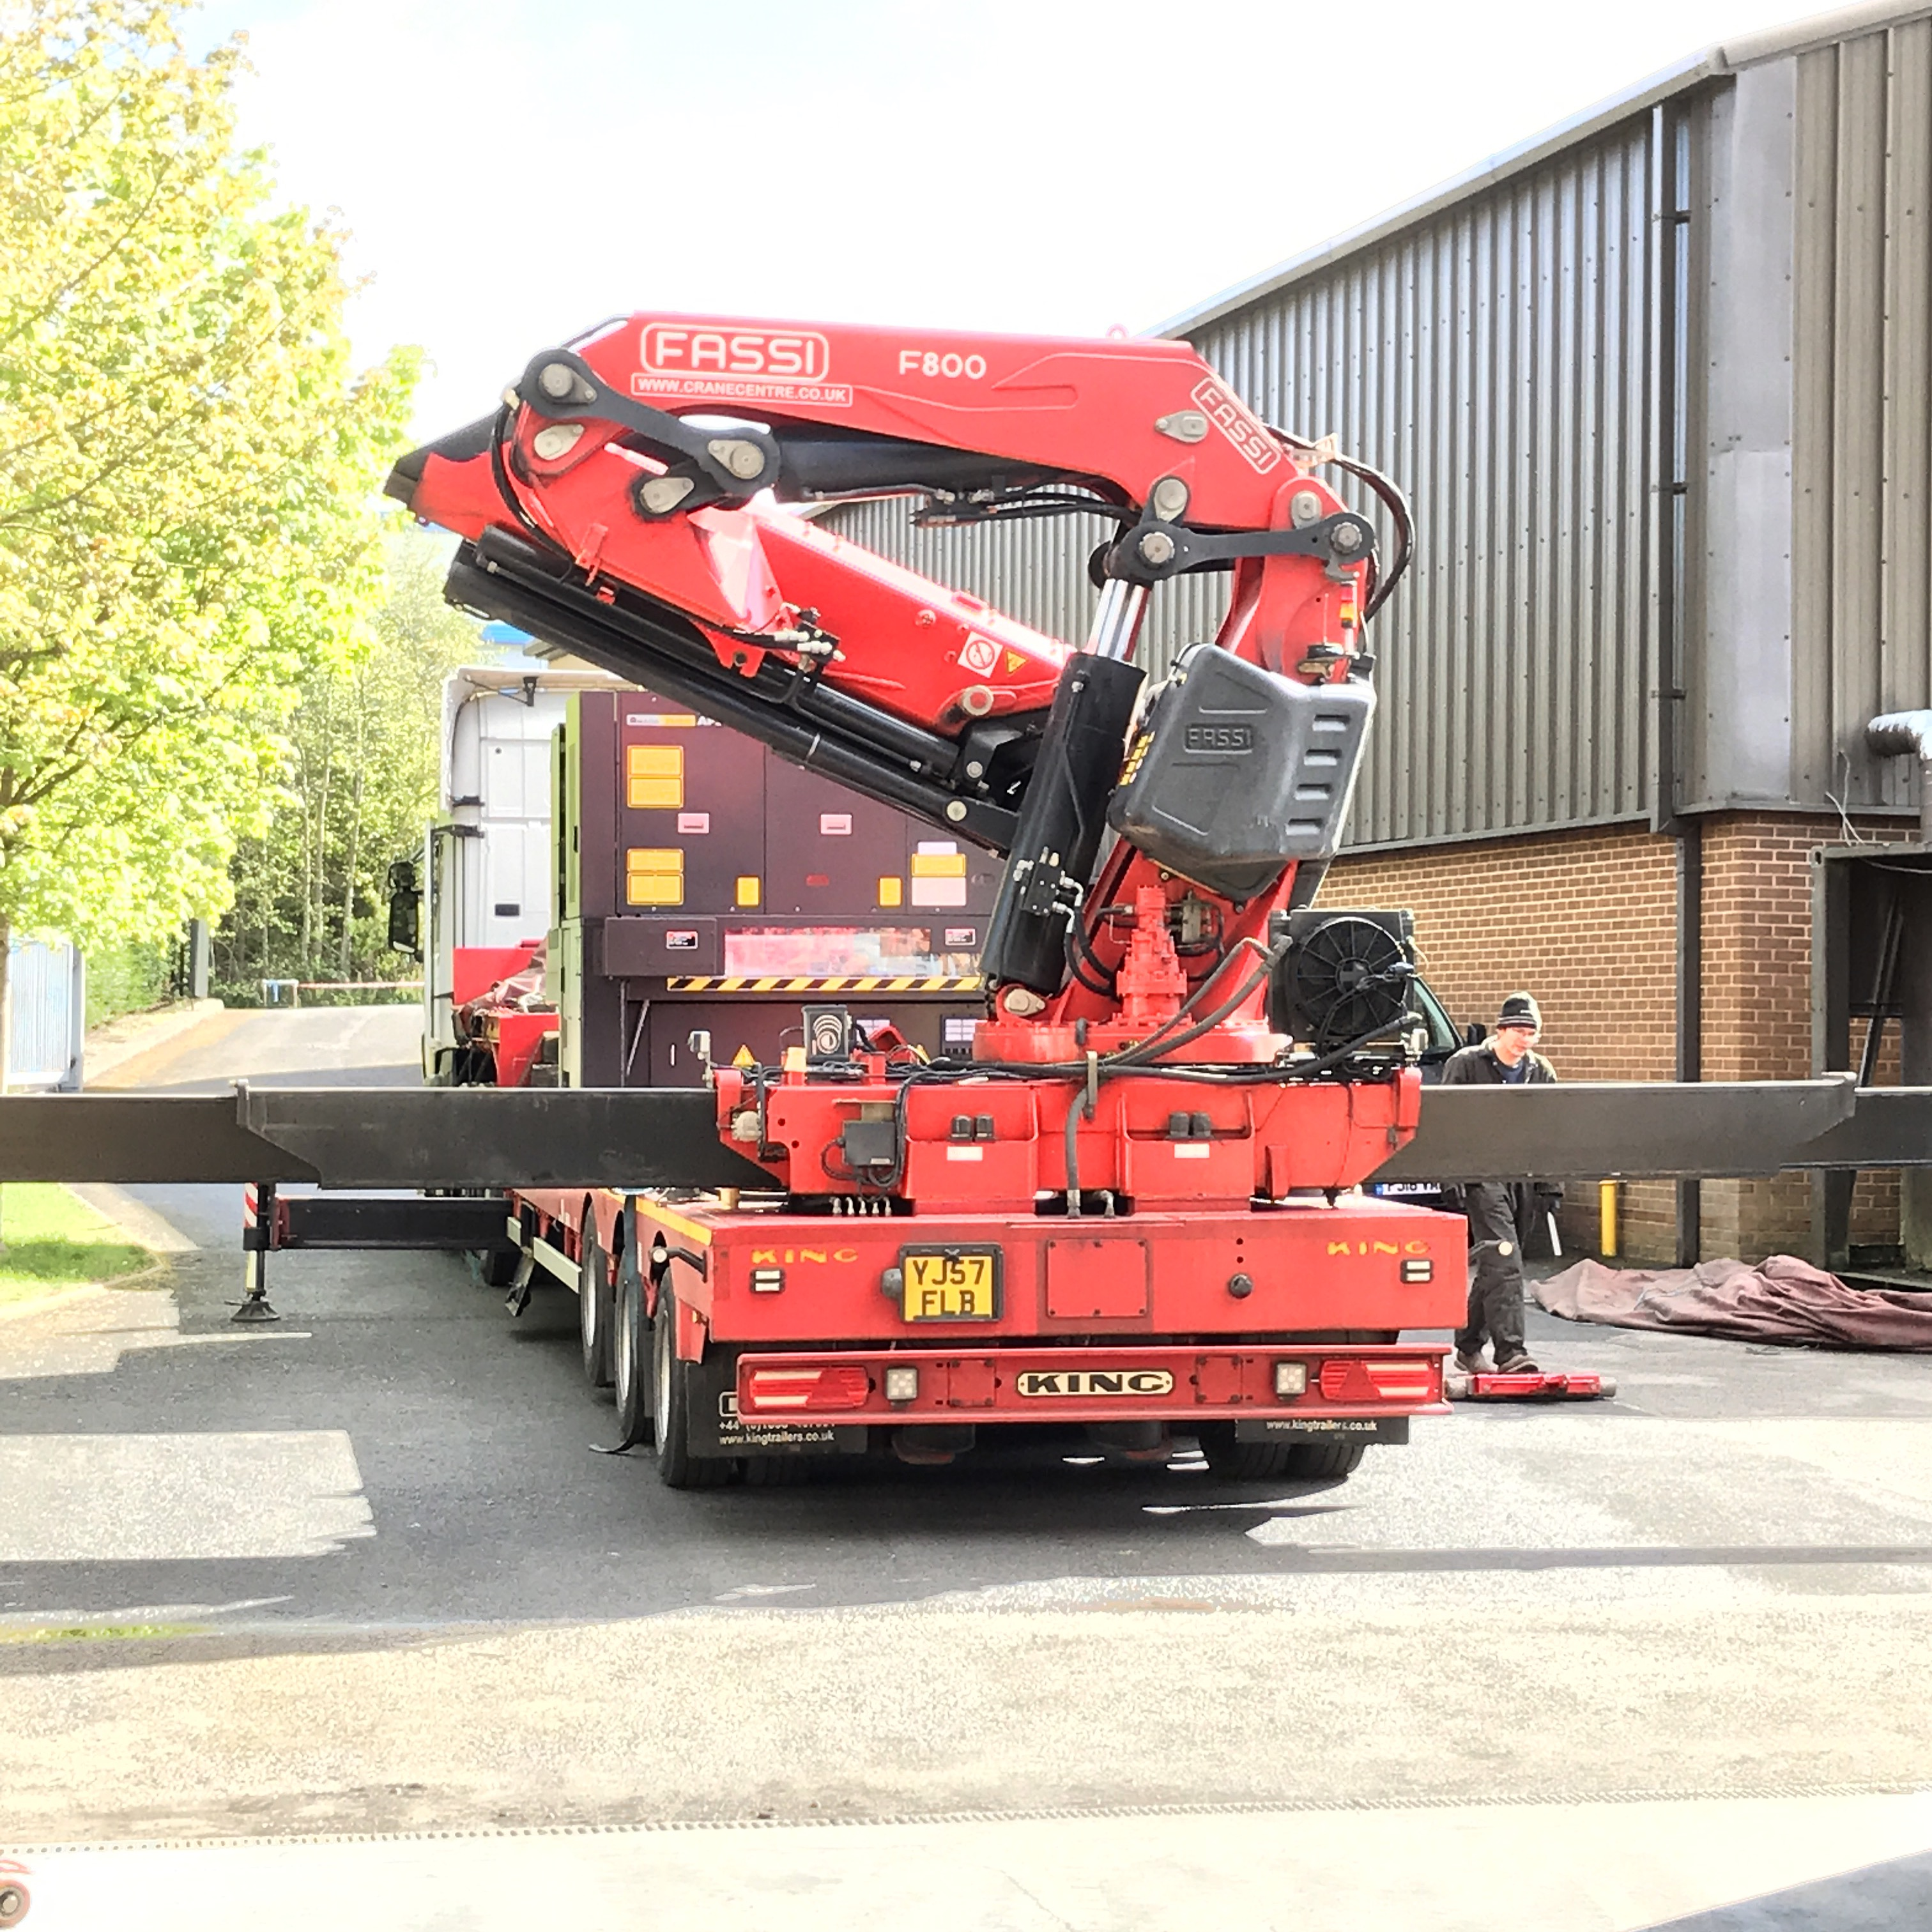 Laser cutting machine unloading off the lorry